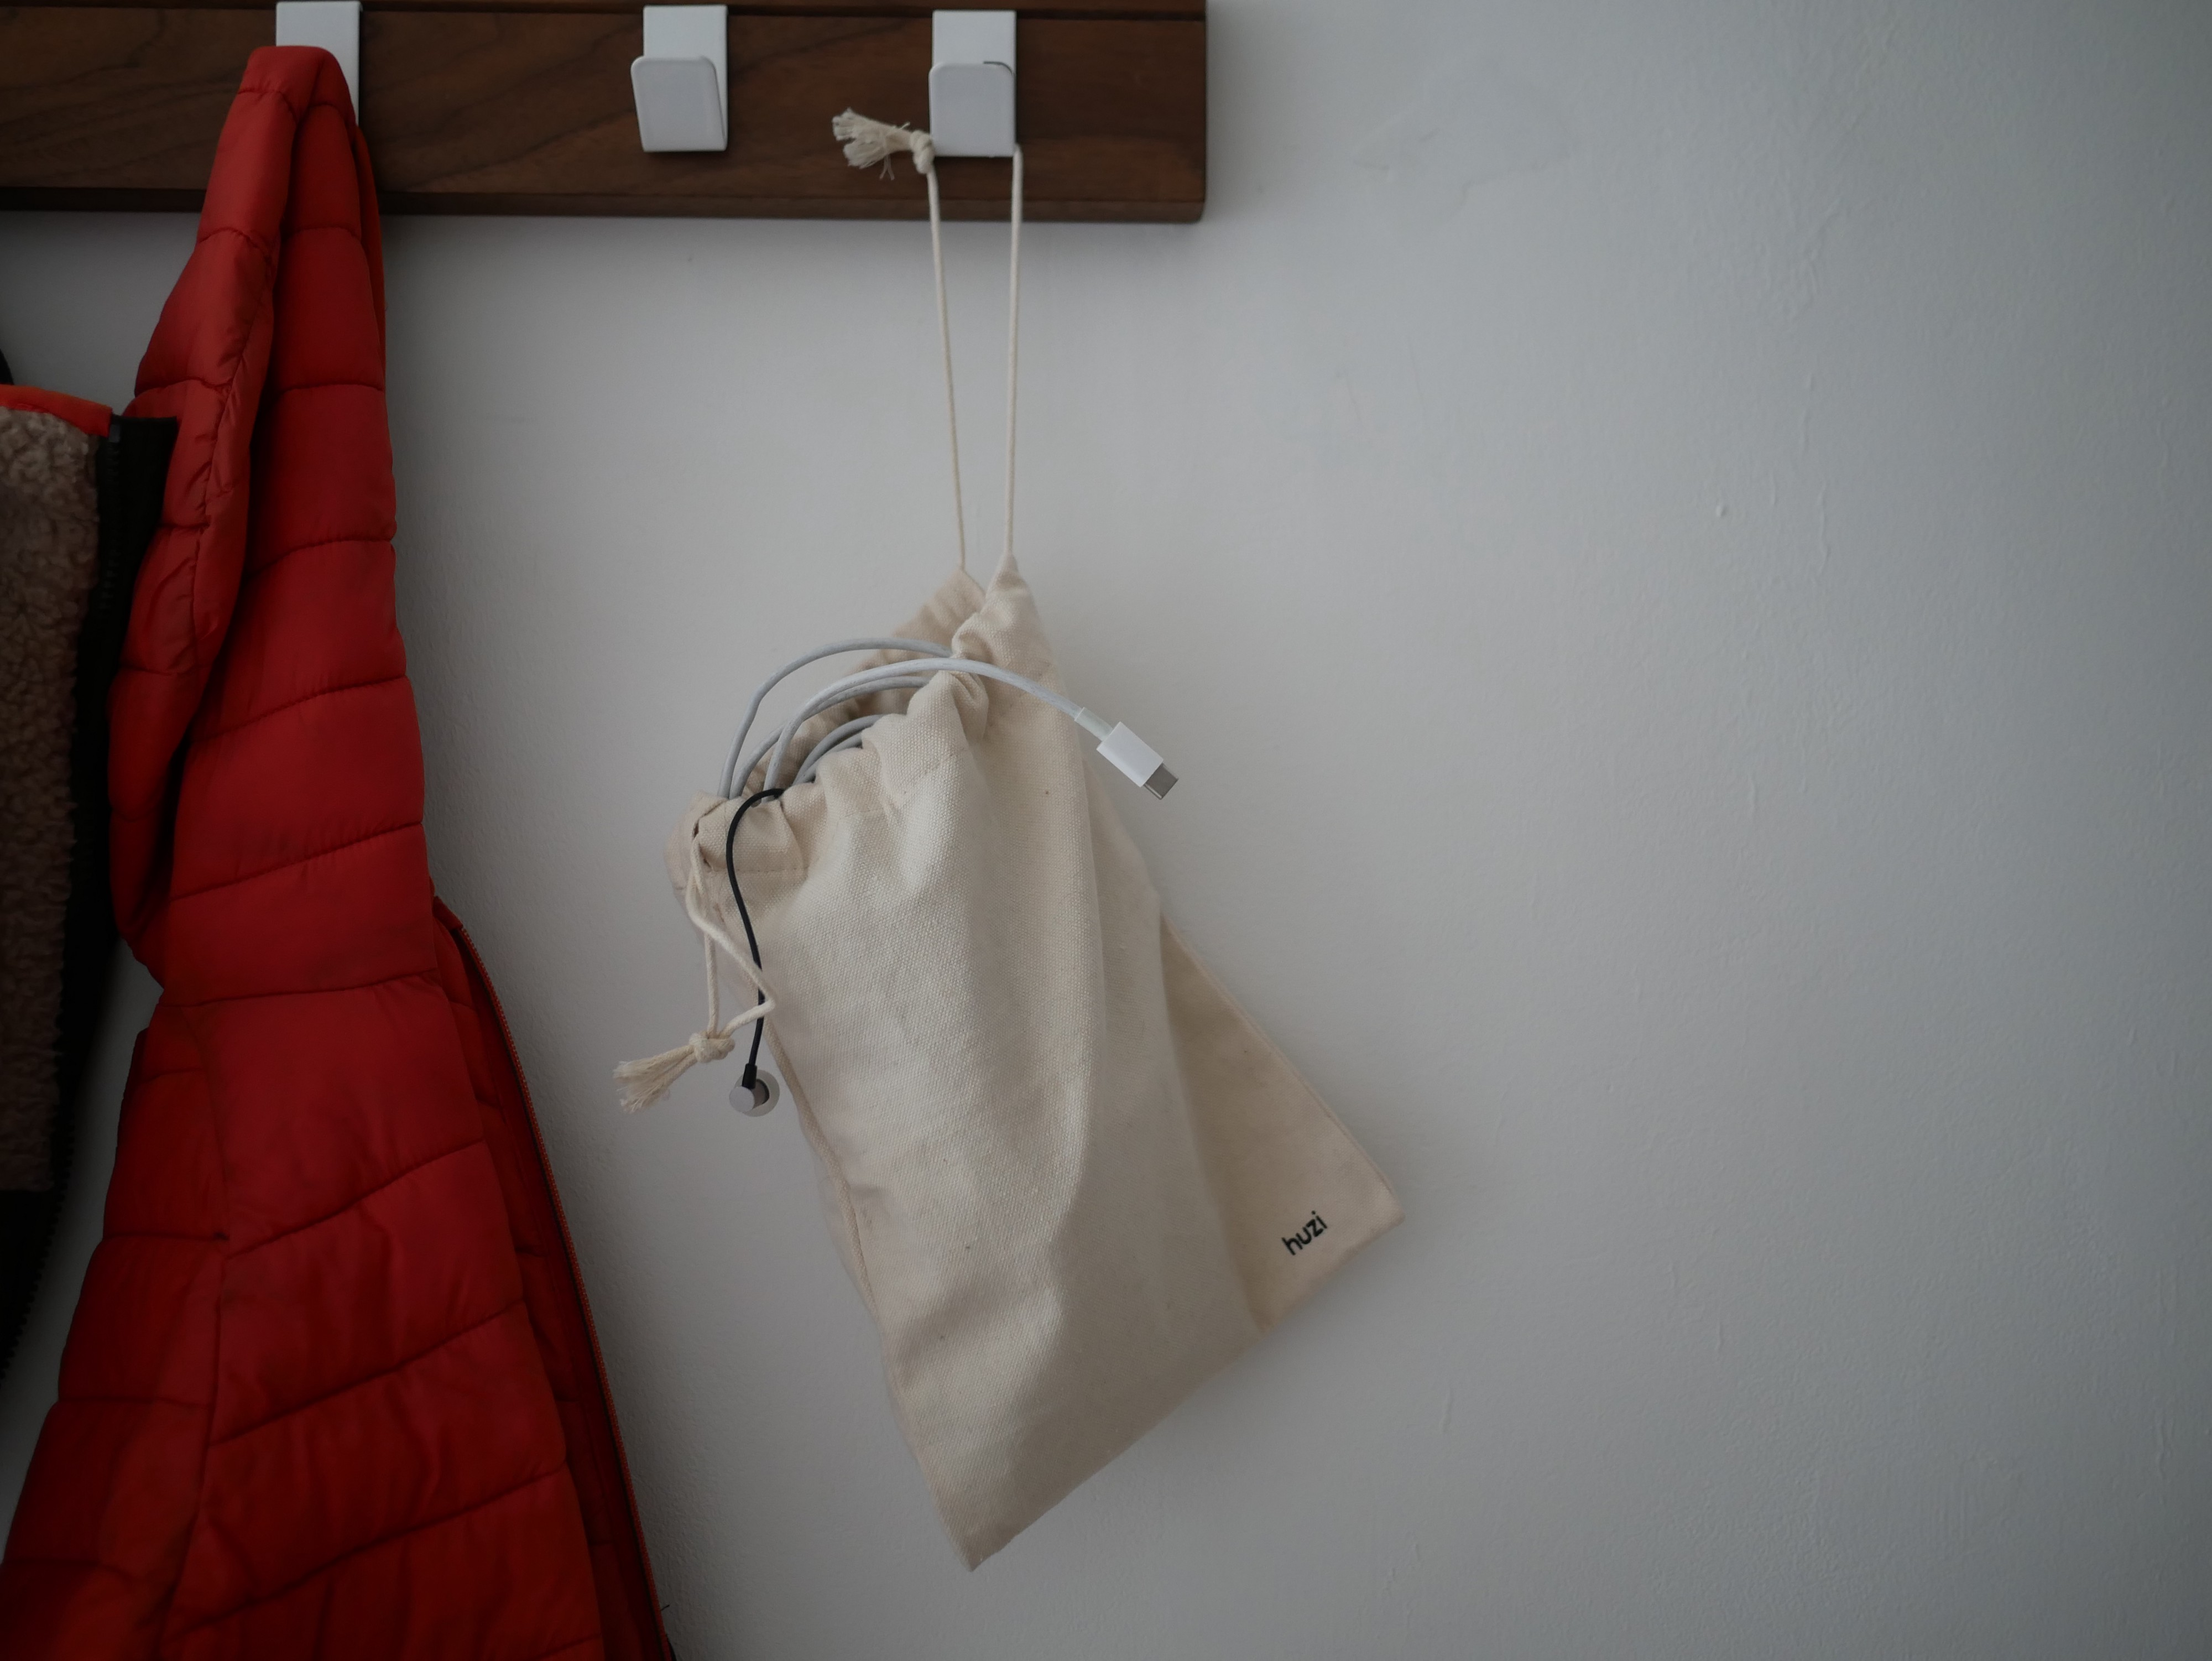 A bag of cables hanging on a coat rack